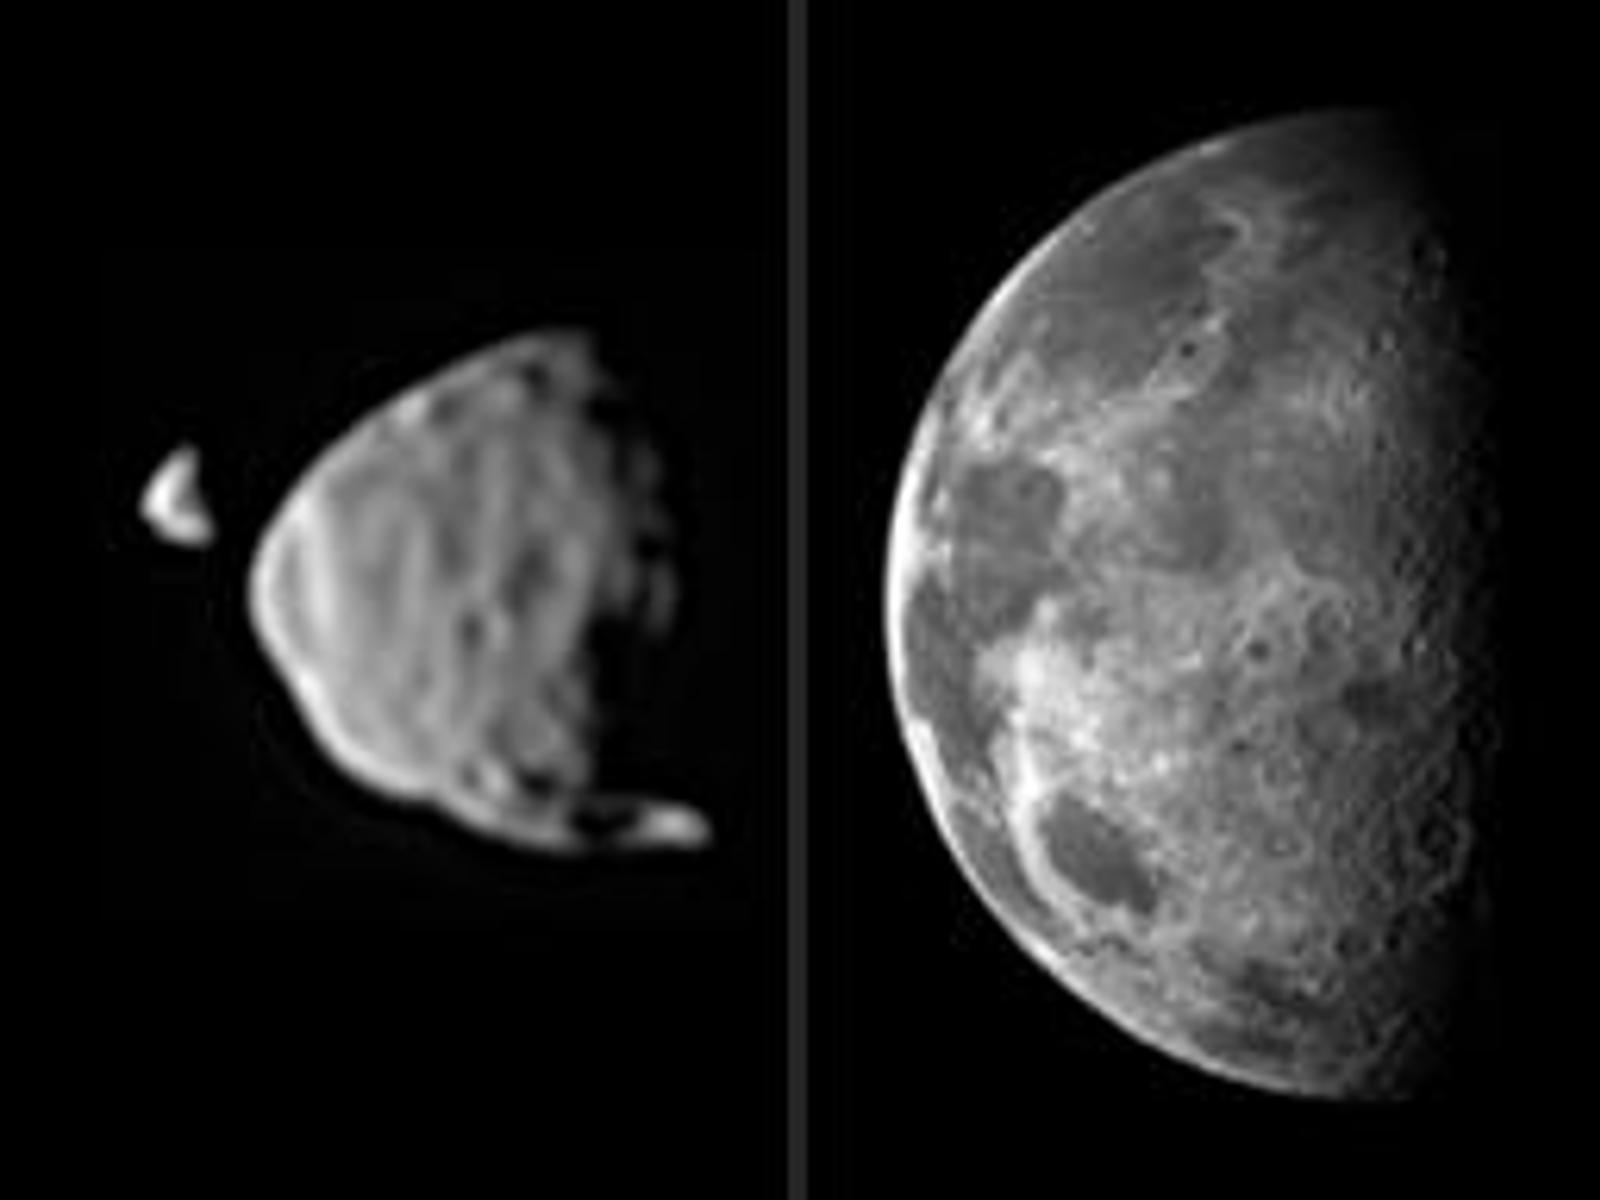 Martian Moons and Earth Moon Comparison